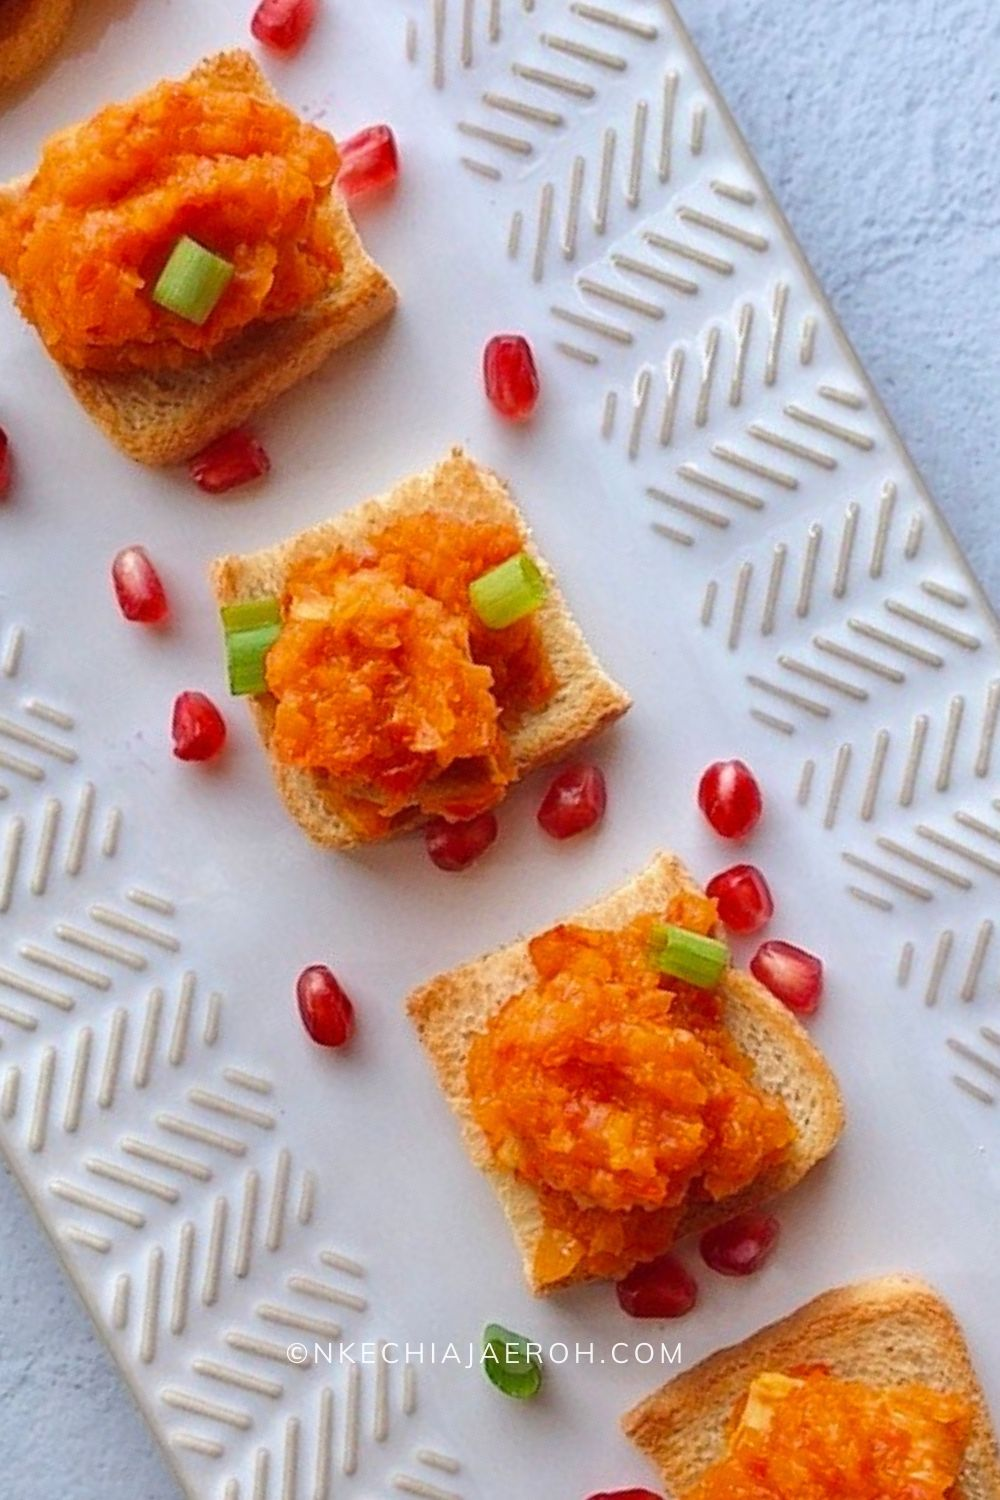 Look no further for a healthy and nutritious holiday appetizer; these healthy and easy to make peppered turkey bites on keto-friendly bread is about to be your best appetizer for any occasion, especially this holiday. These little bites are scrumptious, nutritious, and satisfying. Perfect for Thanksgiving, Christmas and any holiday!